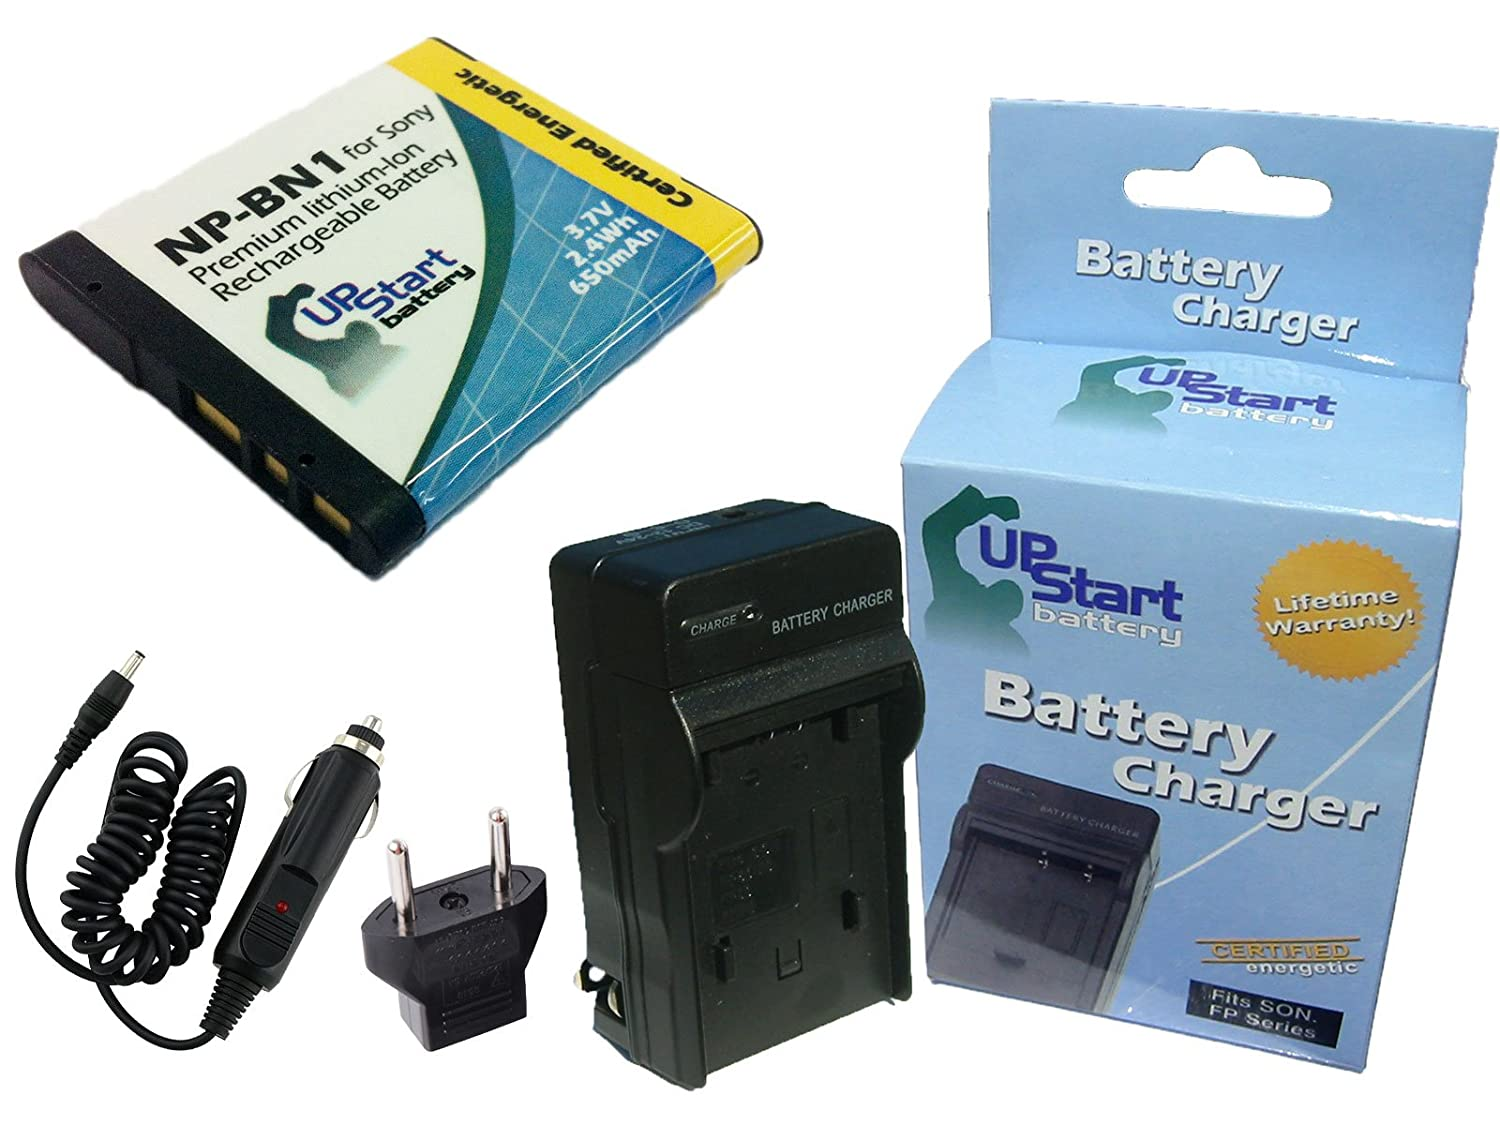 Sony DSC-W520 Battery and Charger with Car Plug and EU Adapter - Replacement for Sony NP-BN1 Digital Camera Batteries and Chargers (650mAh, 3.7V, Lithium-Ion) Upstart Battery NP-BN1-KIT-CAR-EU-DL445